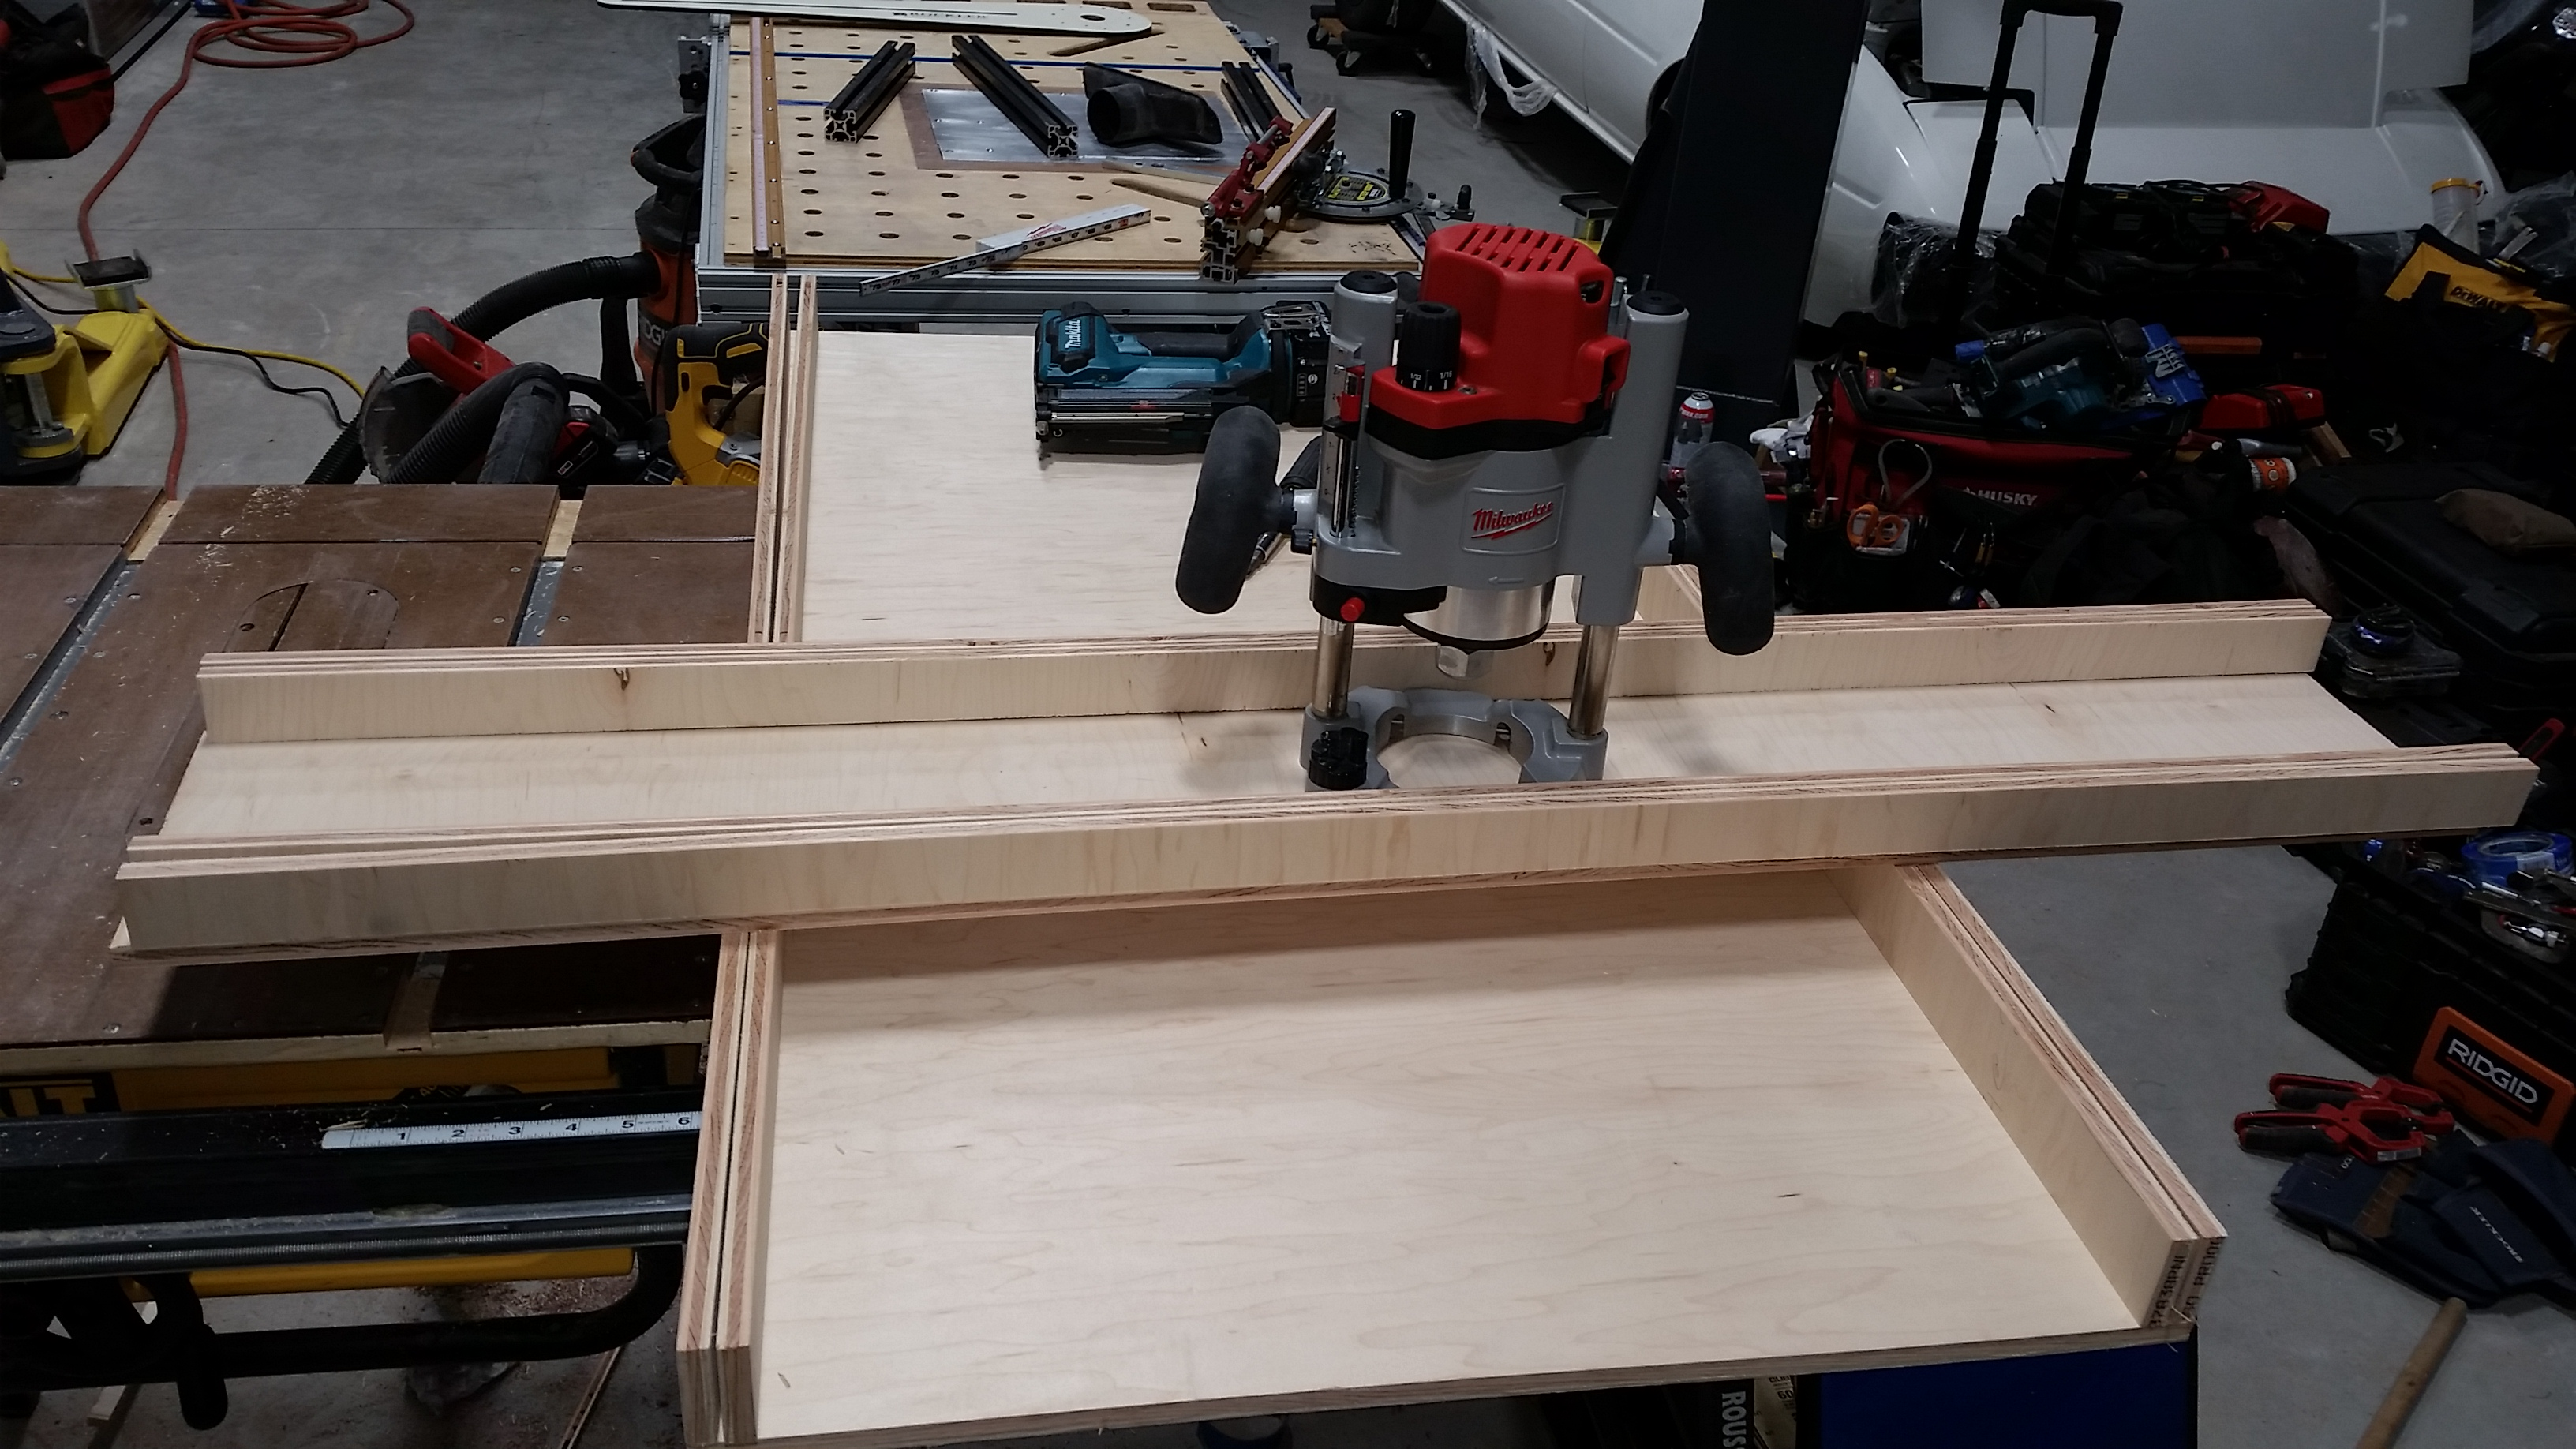 Made a router flattening sled to flatten Christmas presents-20181215_171146.jpg